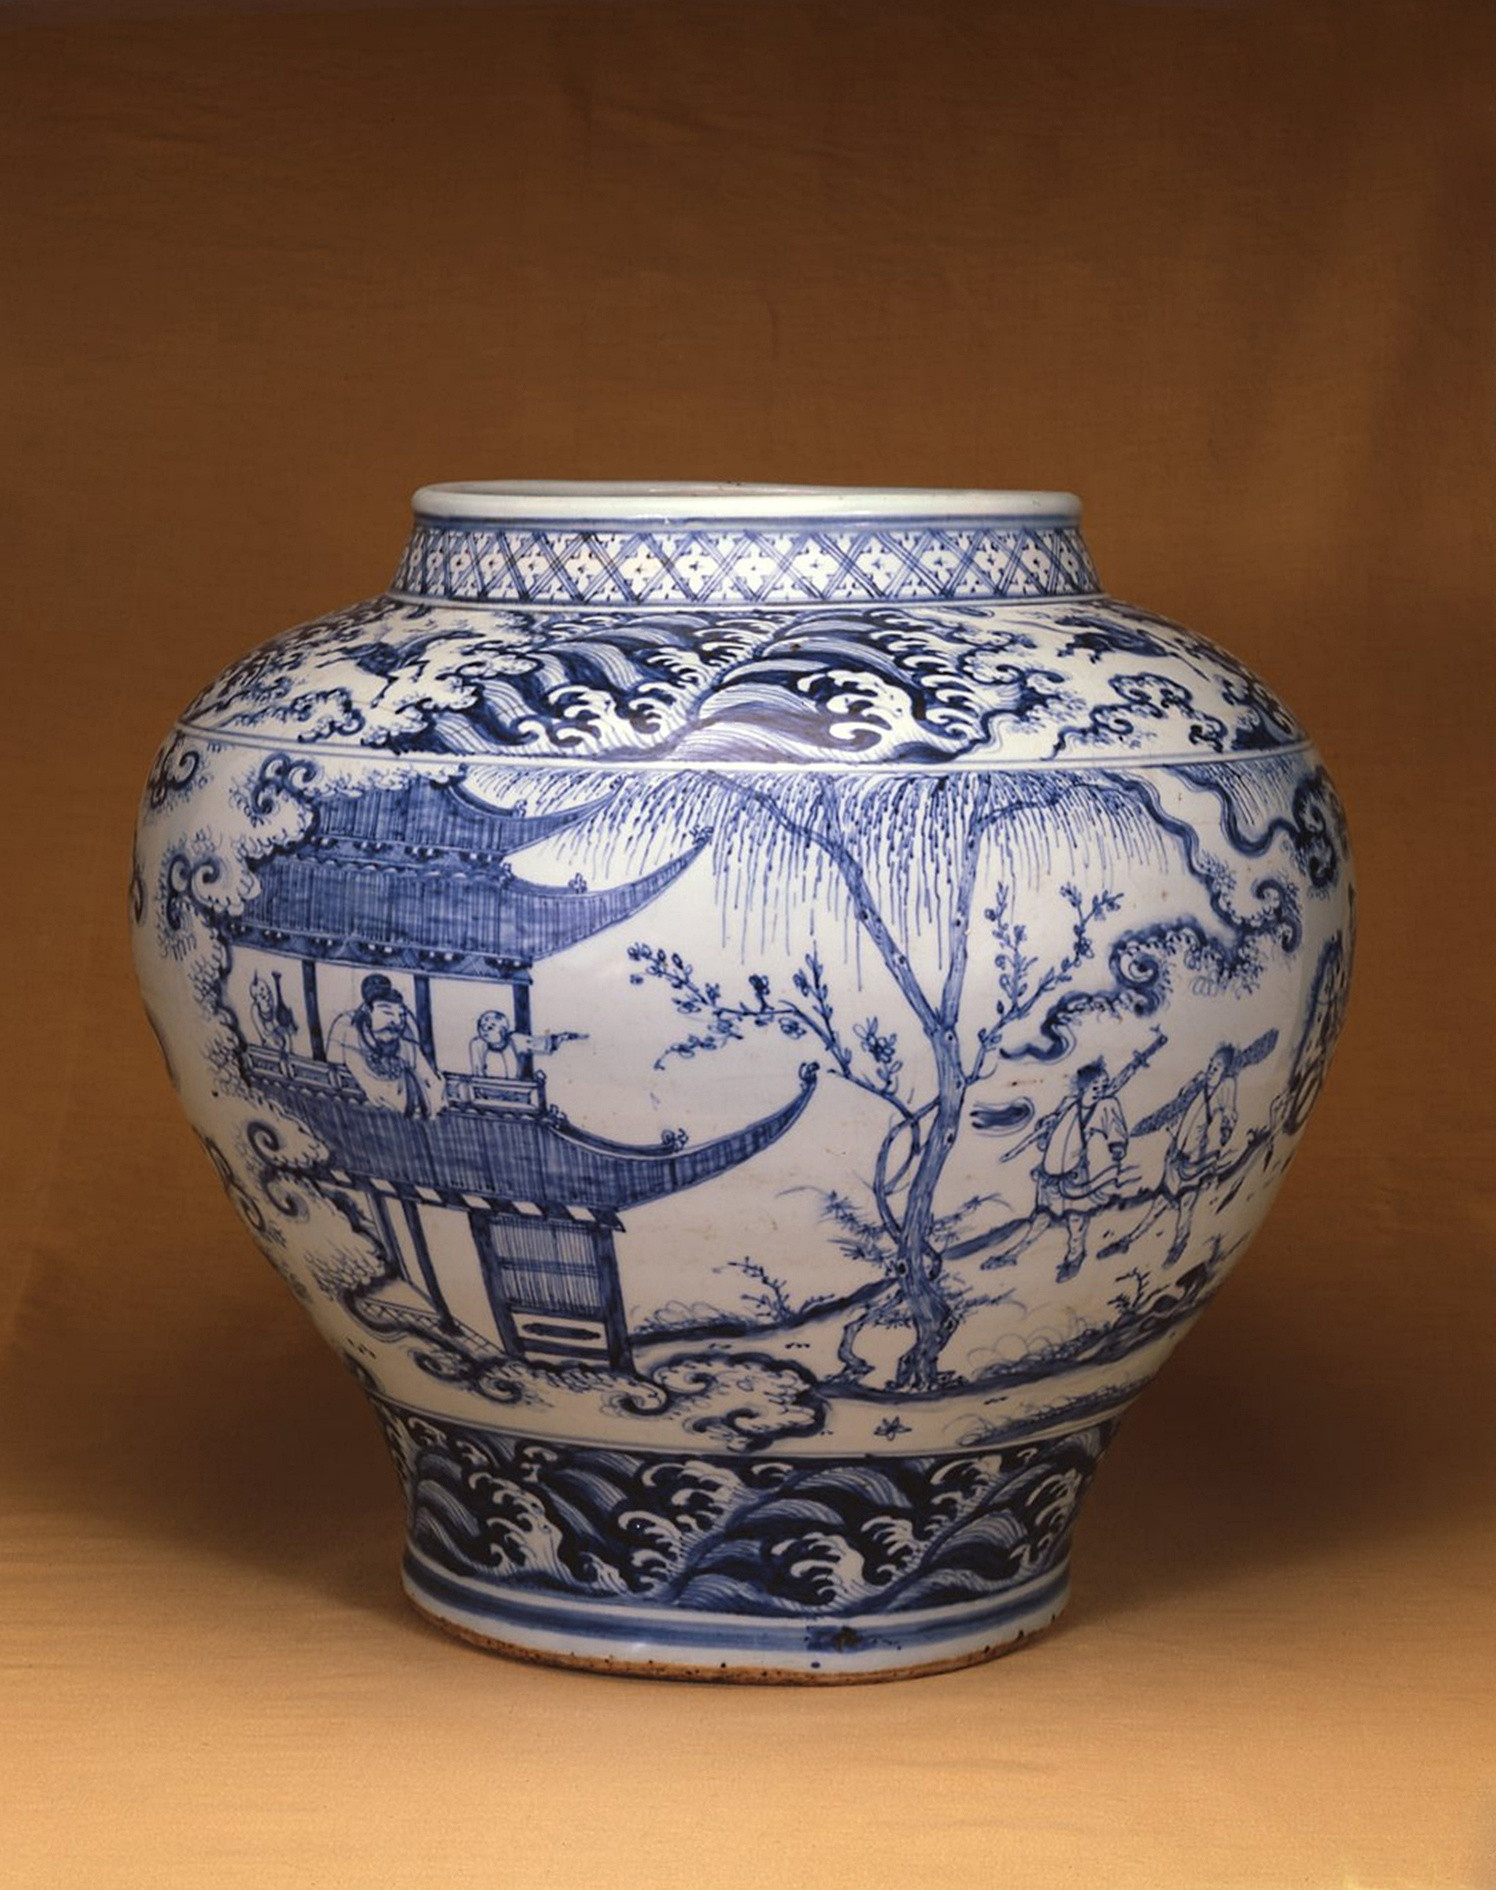 blue and white jars and vases of an extremely fine and rare blue and white jar guan circa 1500 within an extremely fine and rare blue and white jar guan